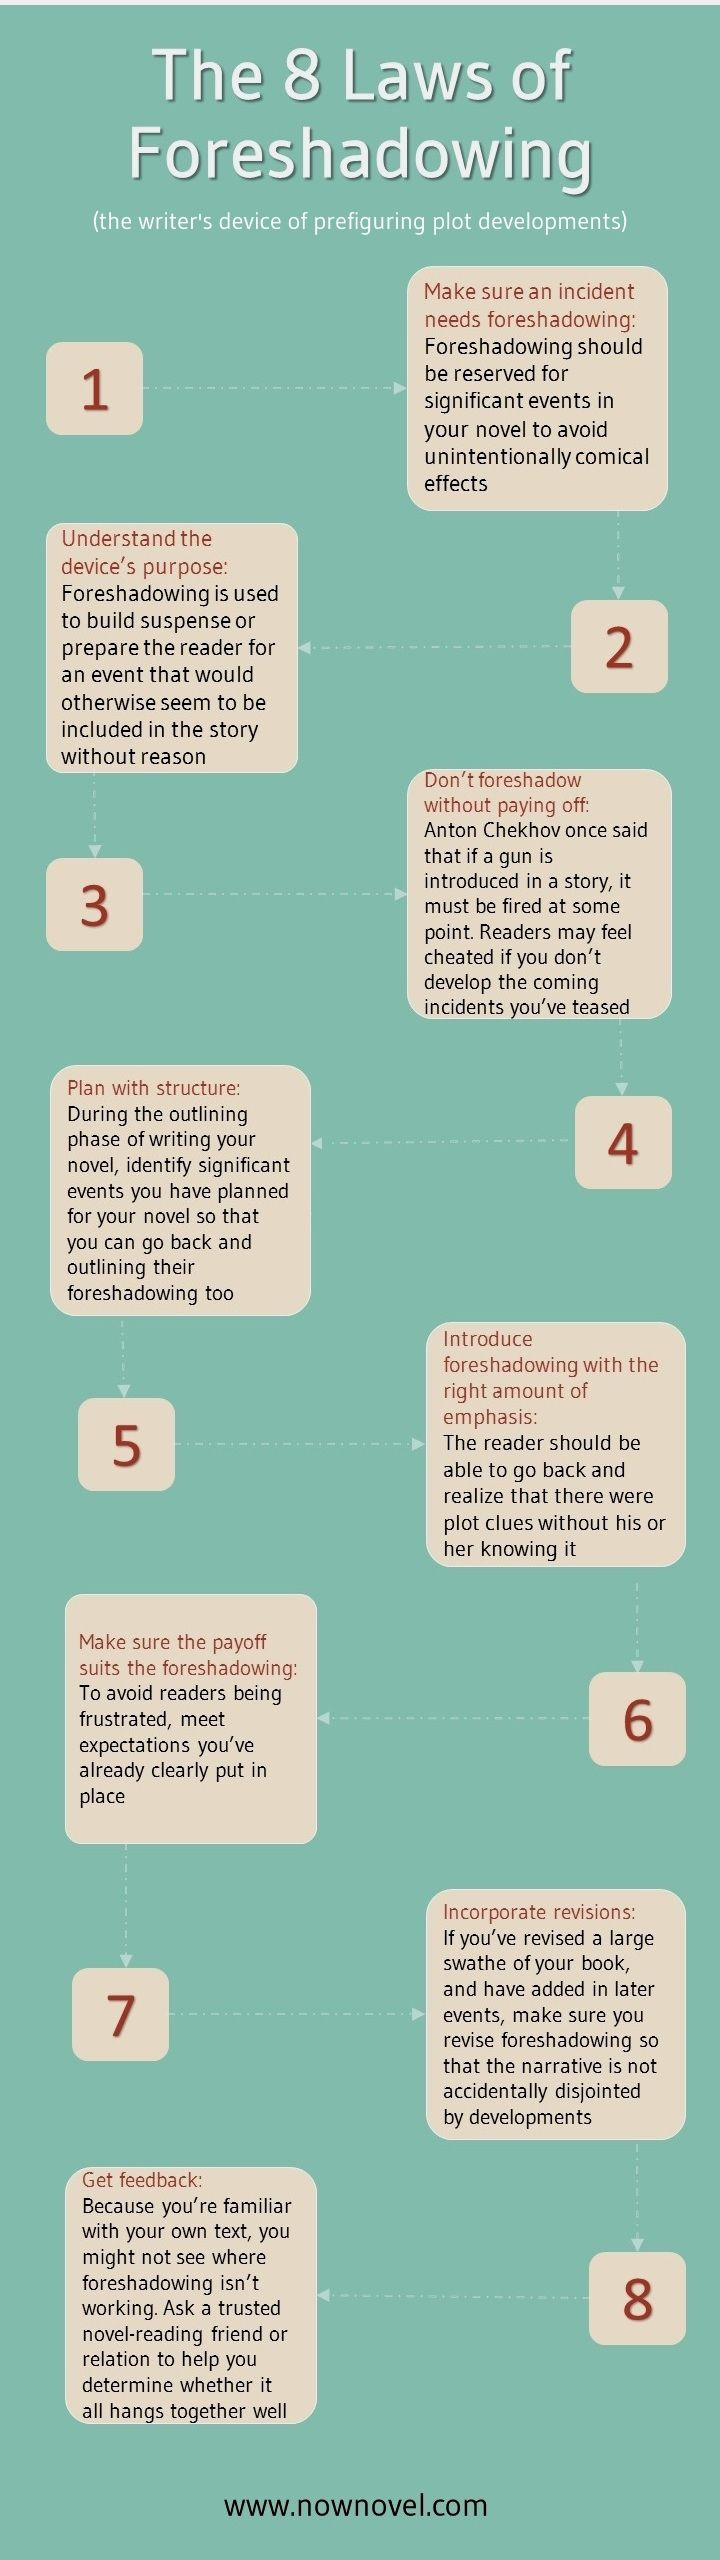 Foreshadowing is one of the important devices writers use in plotting their novels. Share this handy infographic on using foreshadowing like an expert.